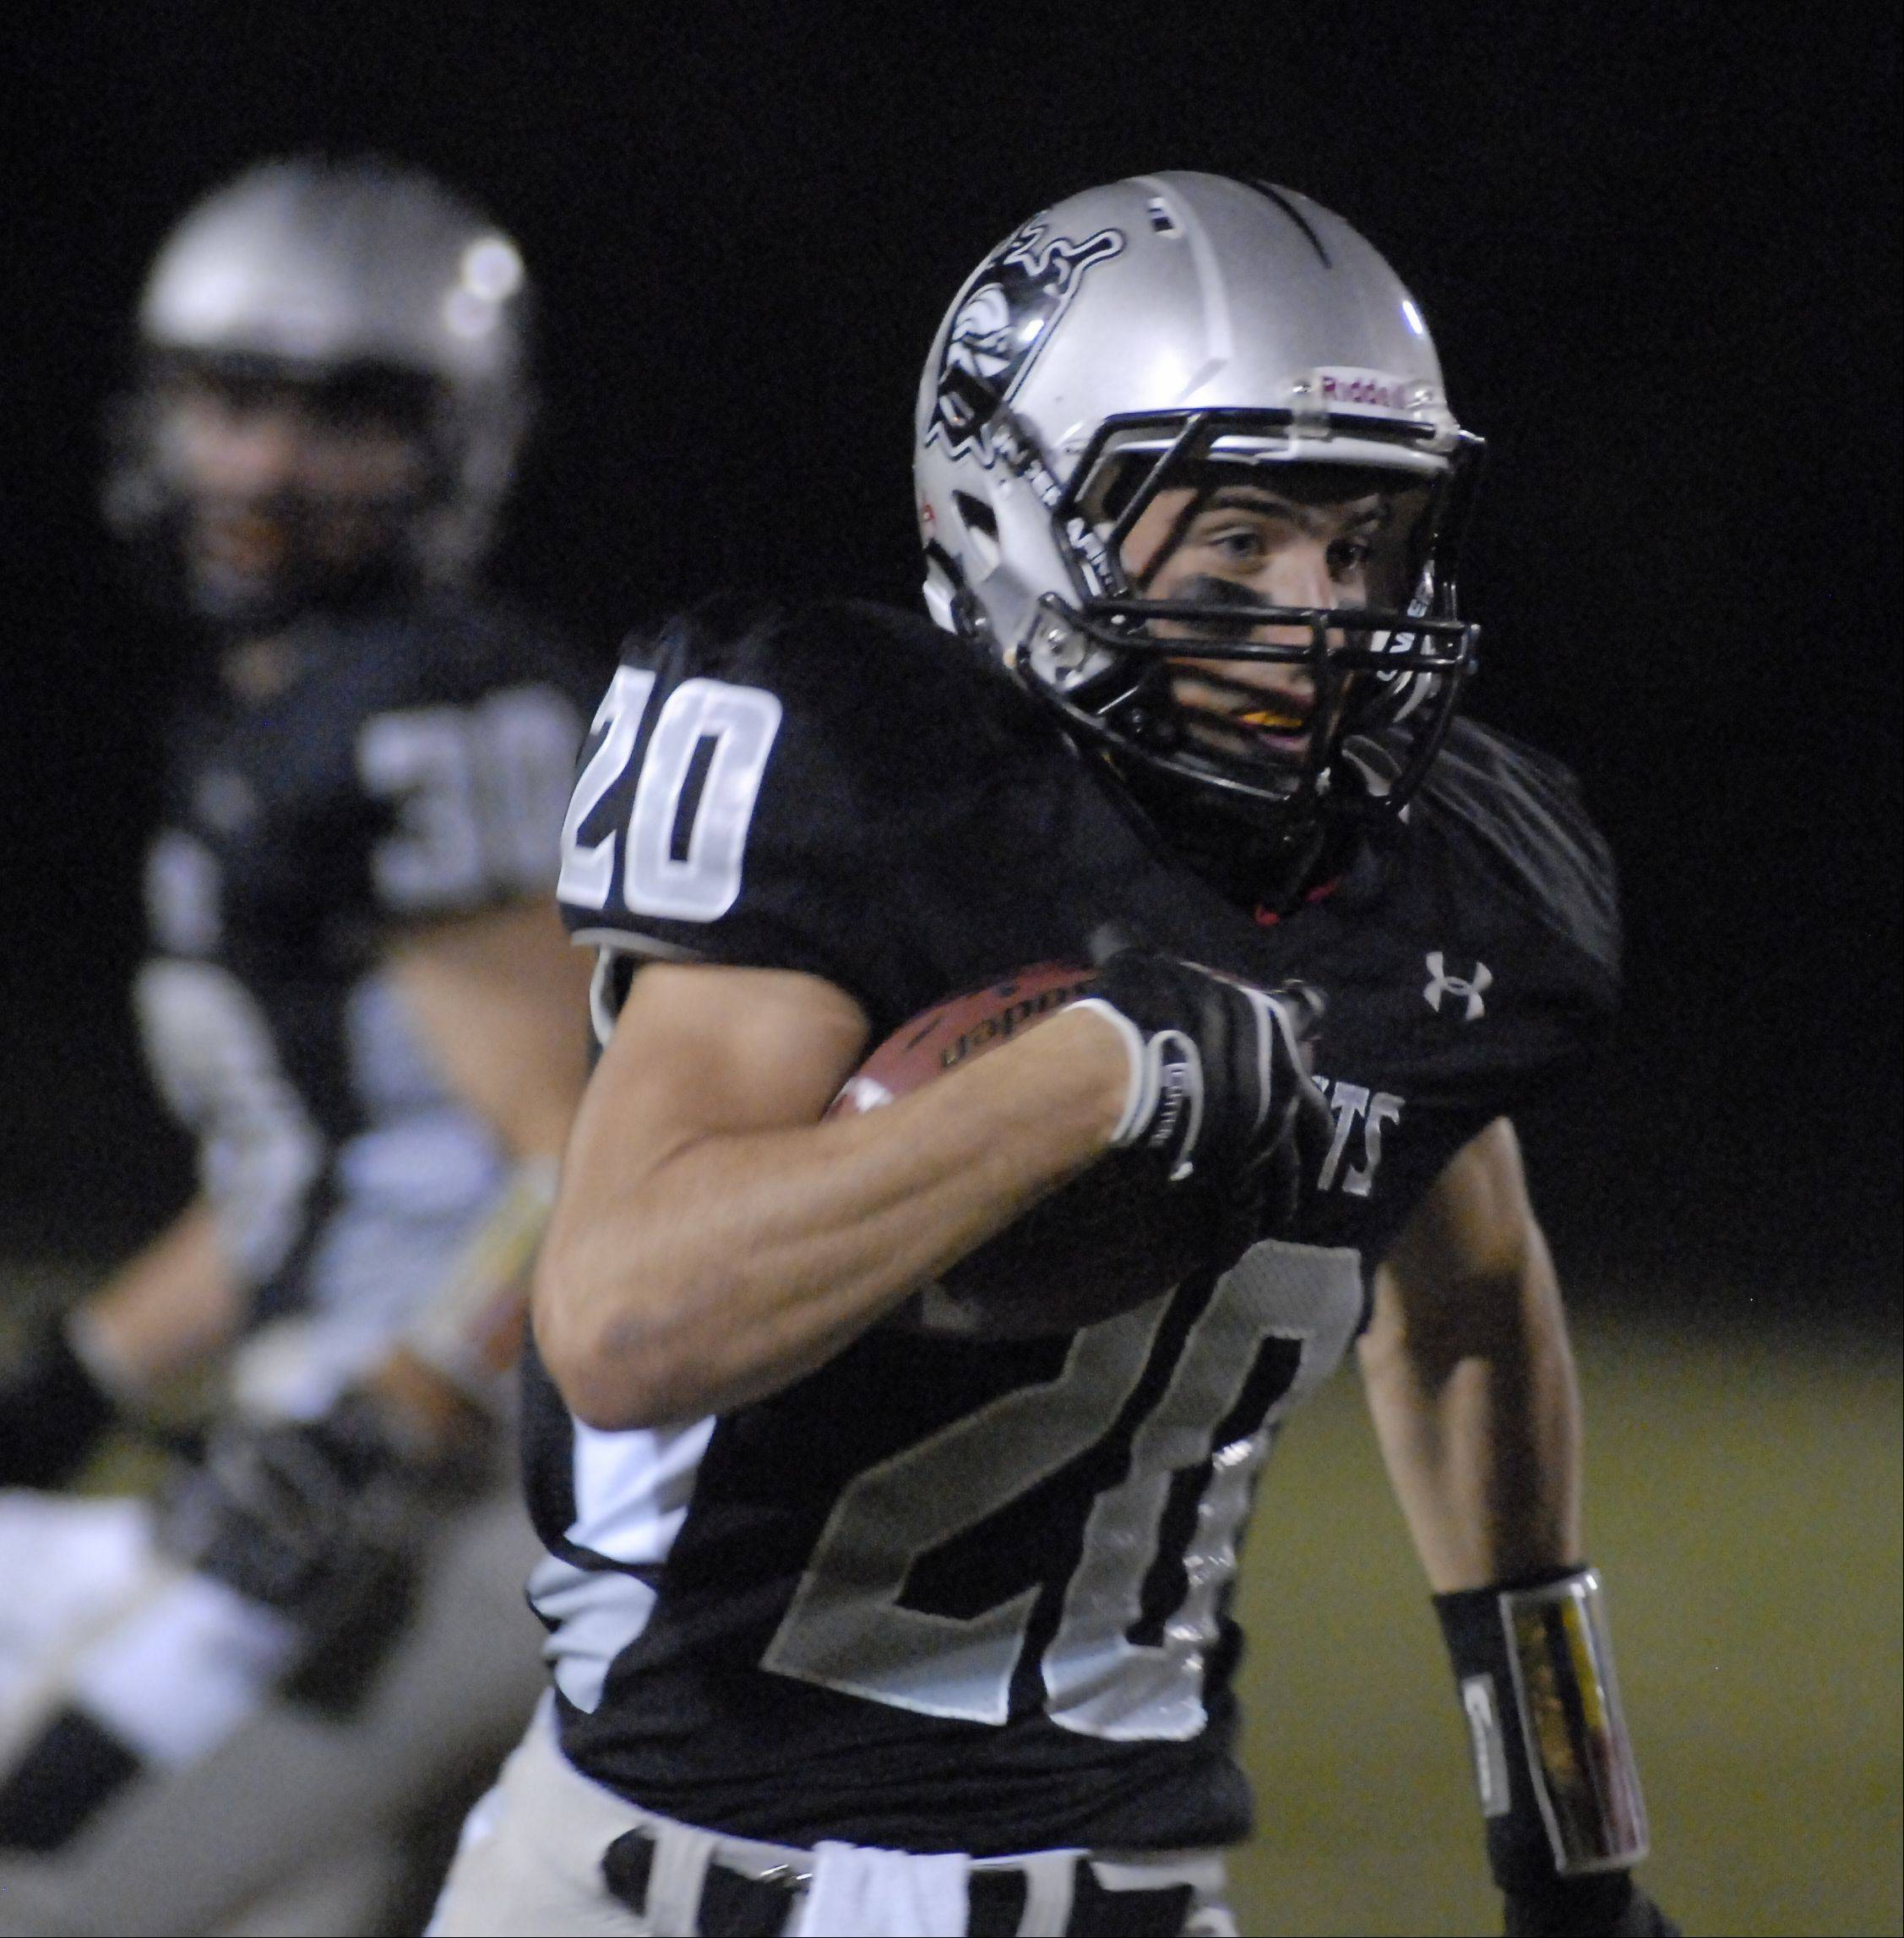 Week 6- Images from DeKalb at Kaneland for Friday night football on Sept. 28, 2012